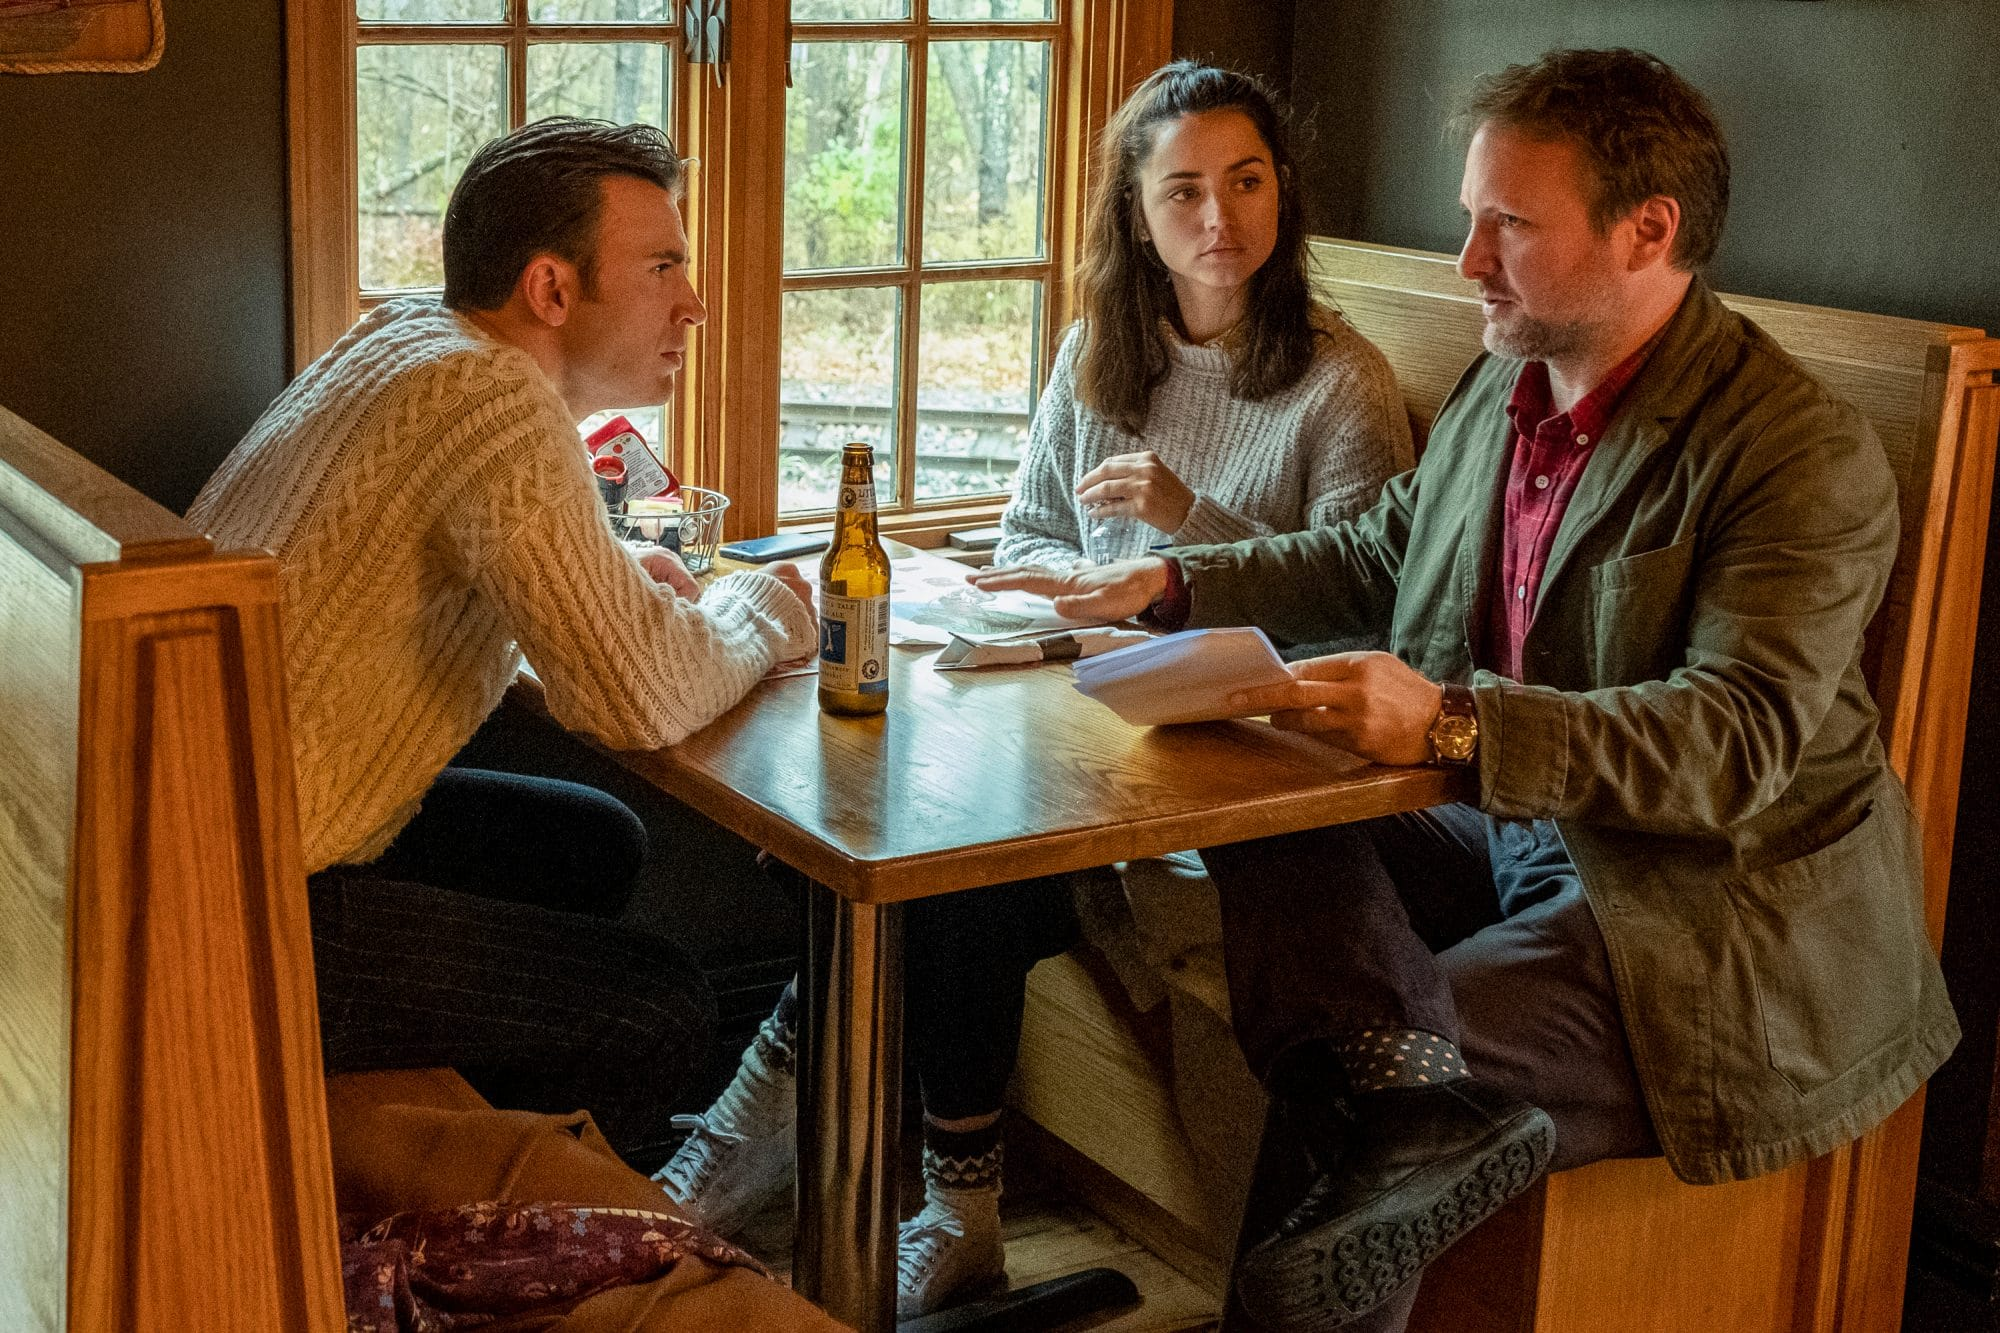 Knives Out poster director Rian Johnson with Chris Evans and Ana de Armas